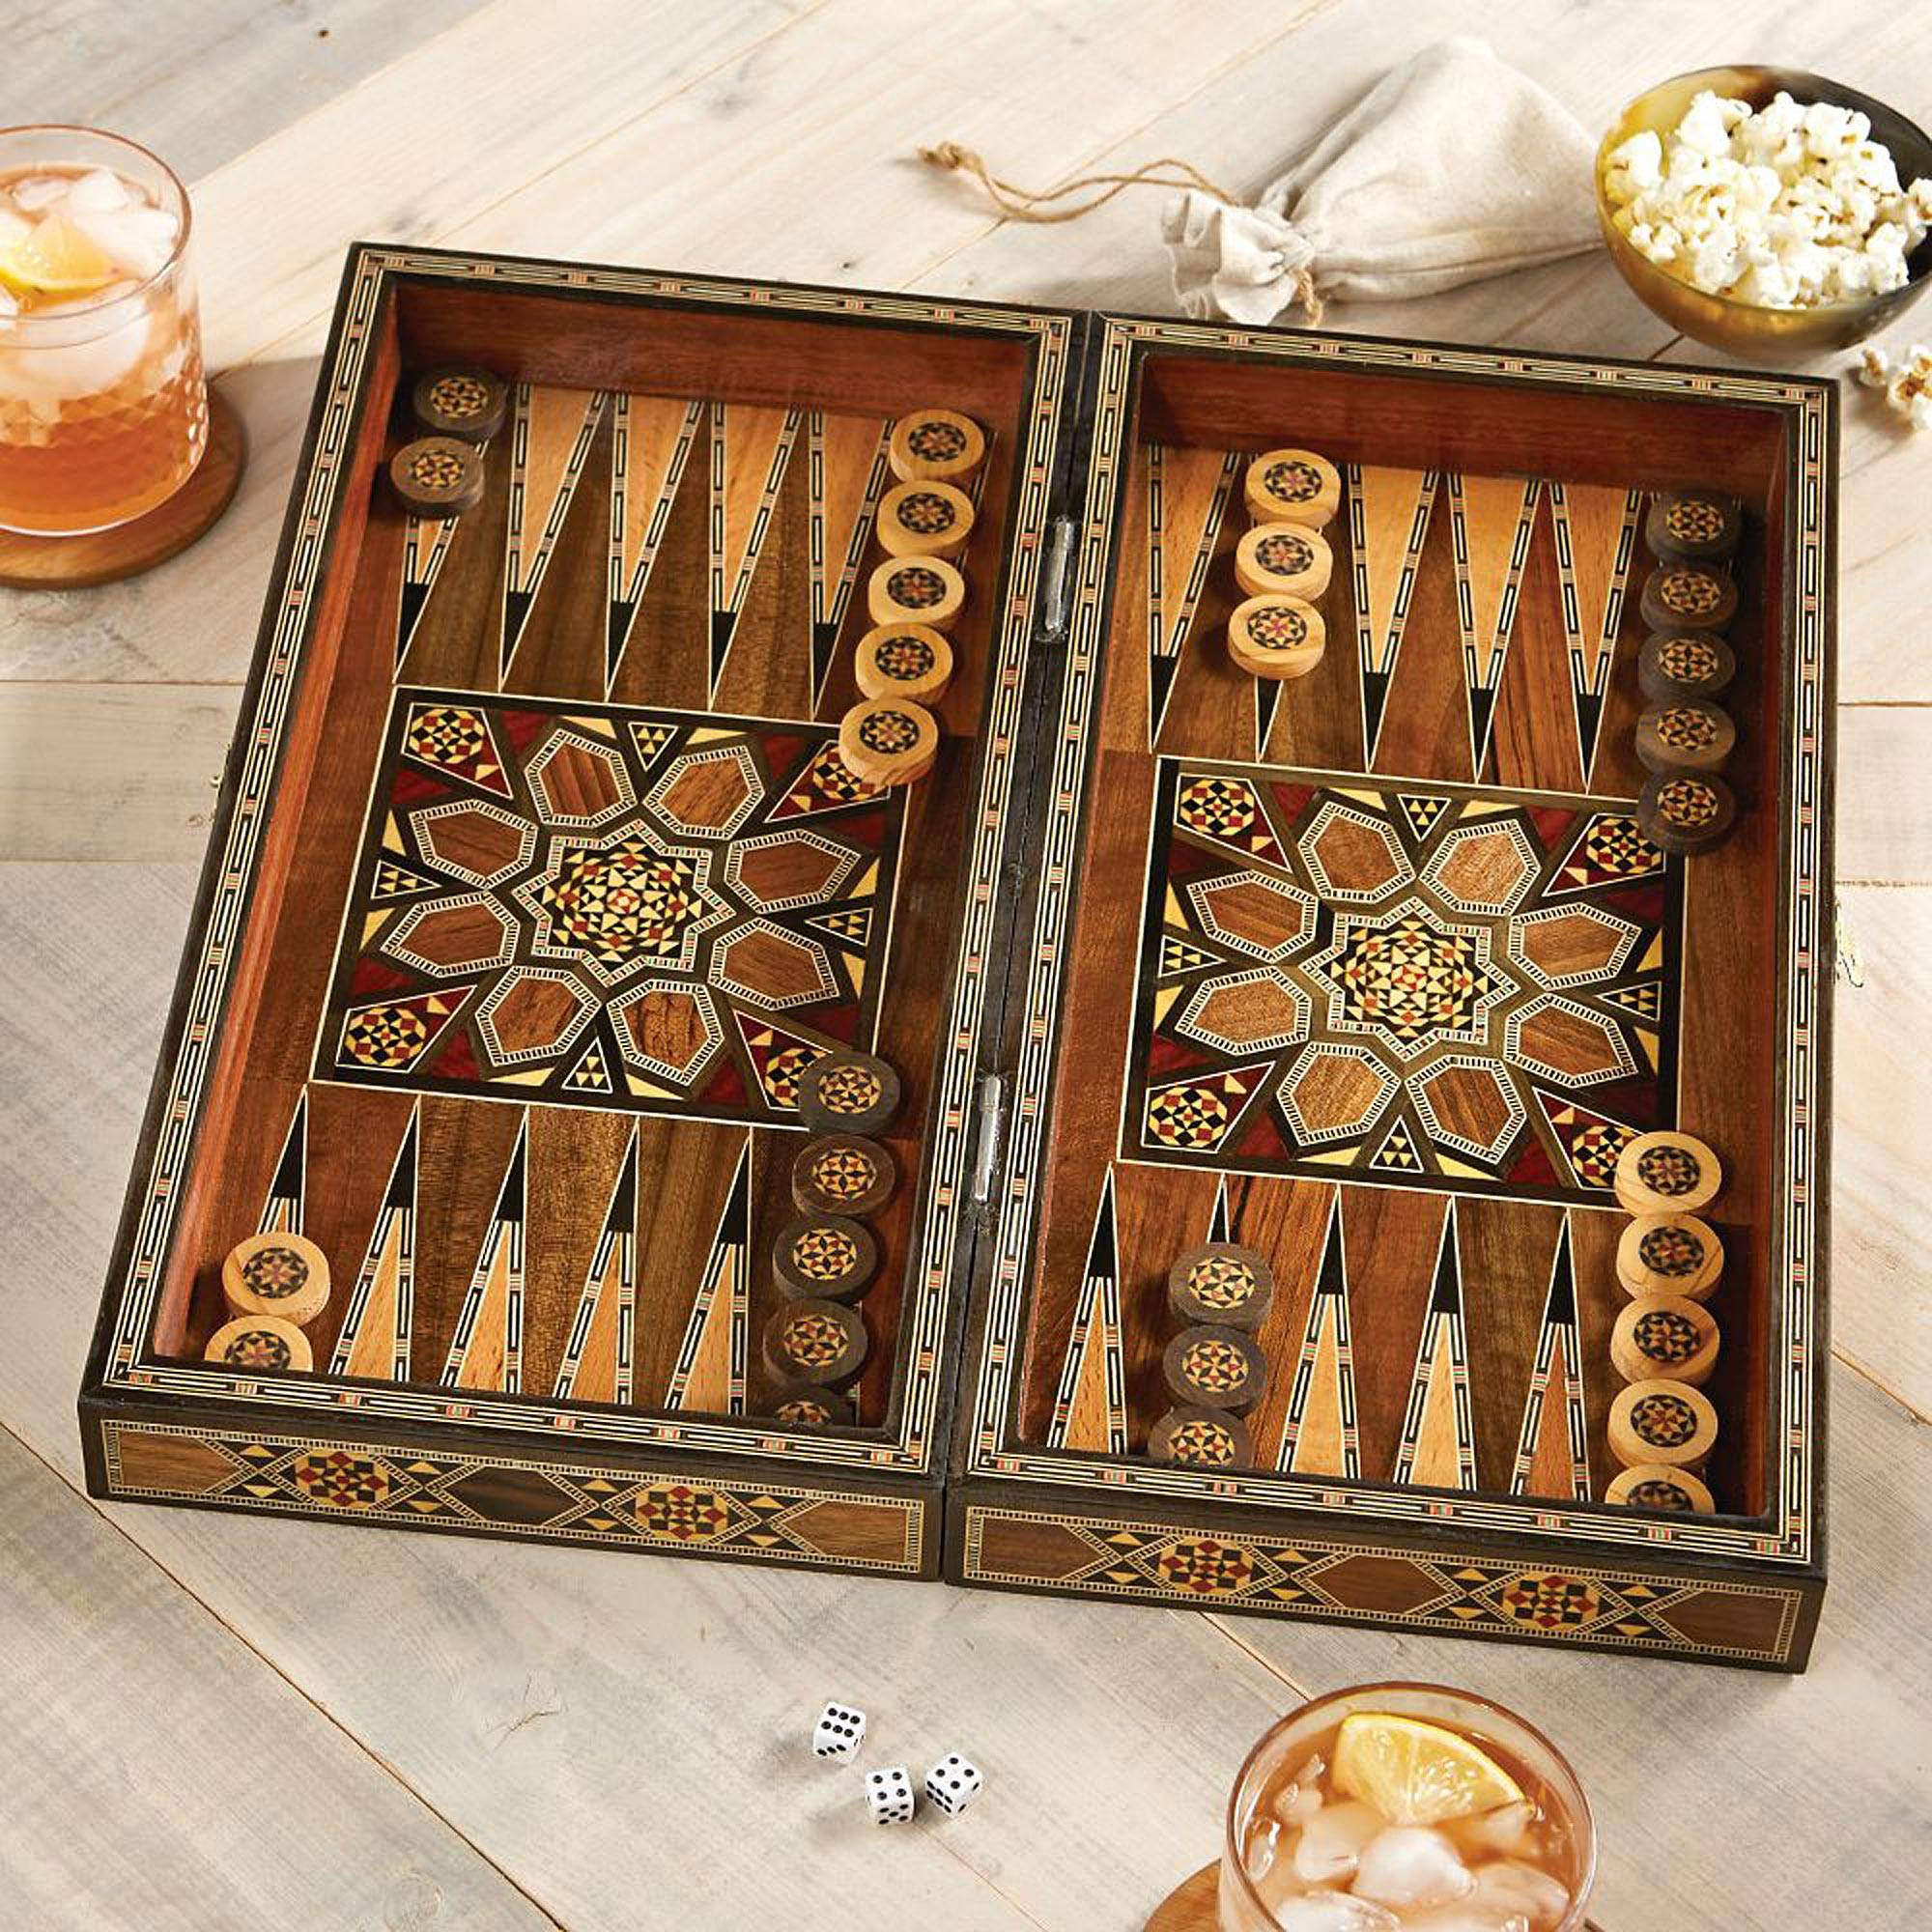 Card Game Set Wood Handcrafted India Full House Place To Call Home Box Set Wood Mosaic Backgammon Set, U0027mesopotamian Matchu0027 - Mosaic Wood-inlaid  Backgammon Set